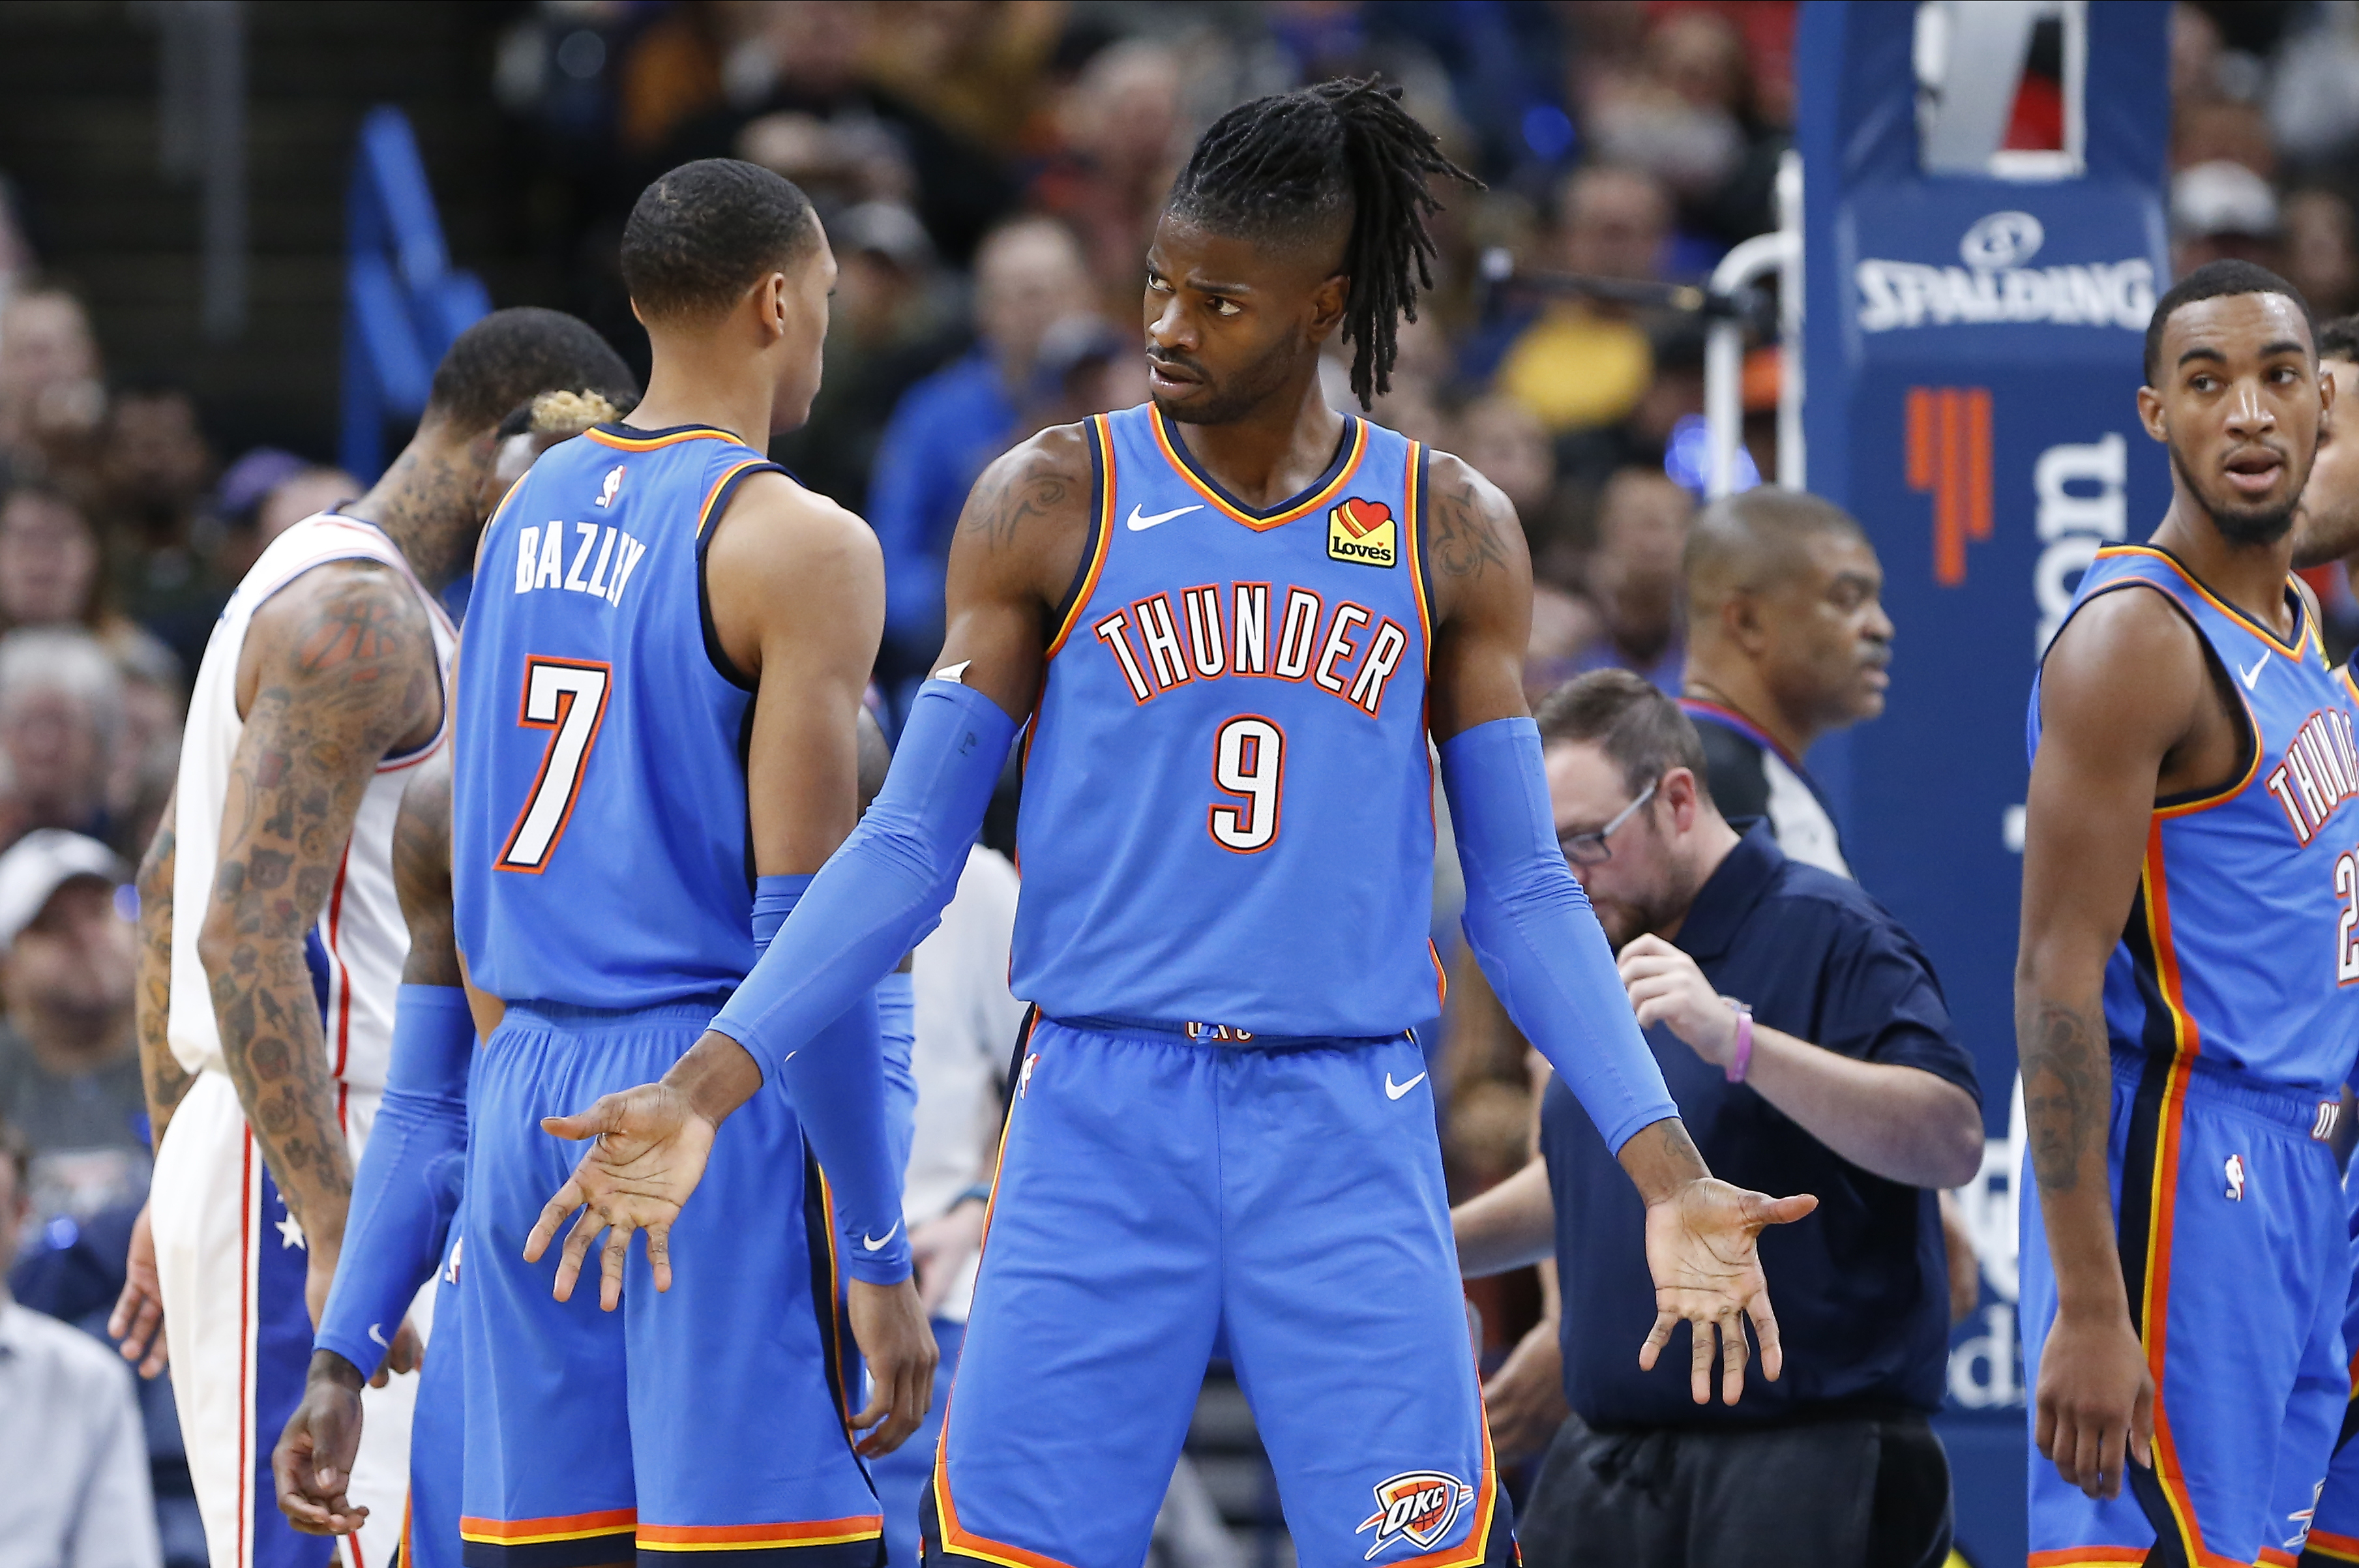 Nerlens Noel might be heading back home to New England